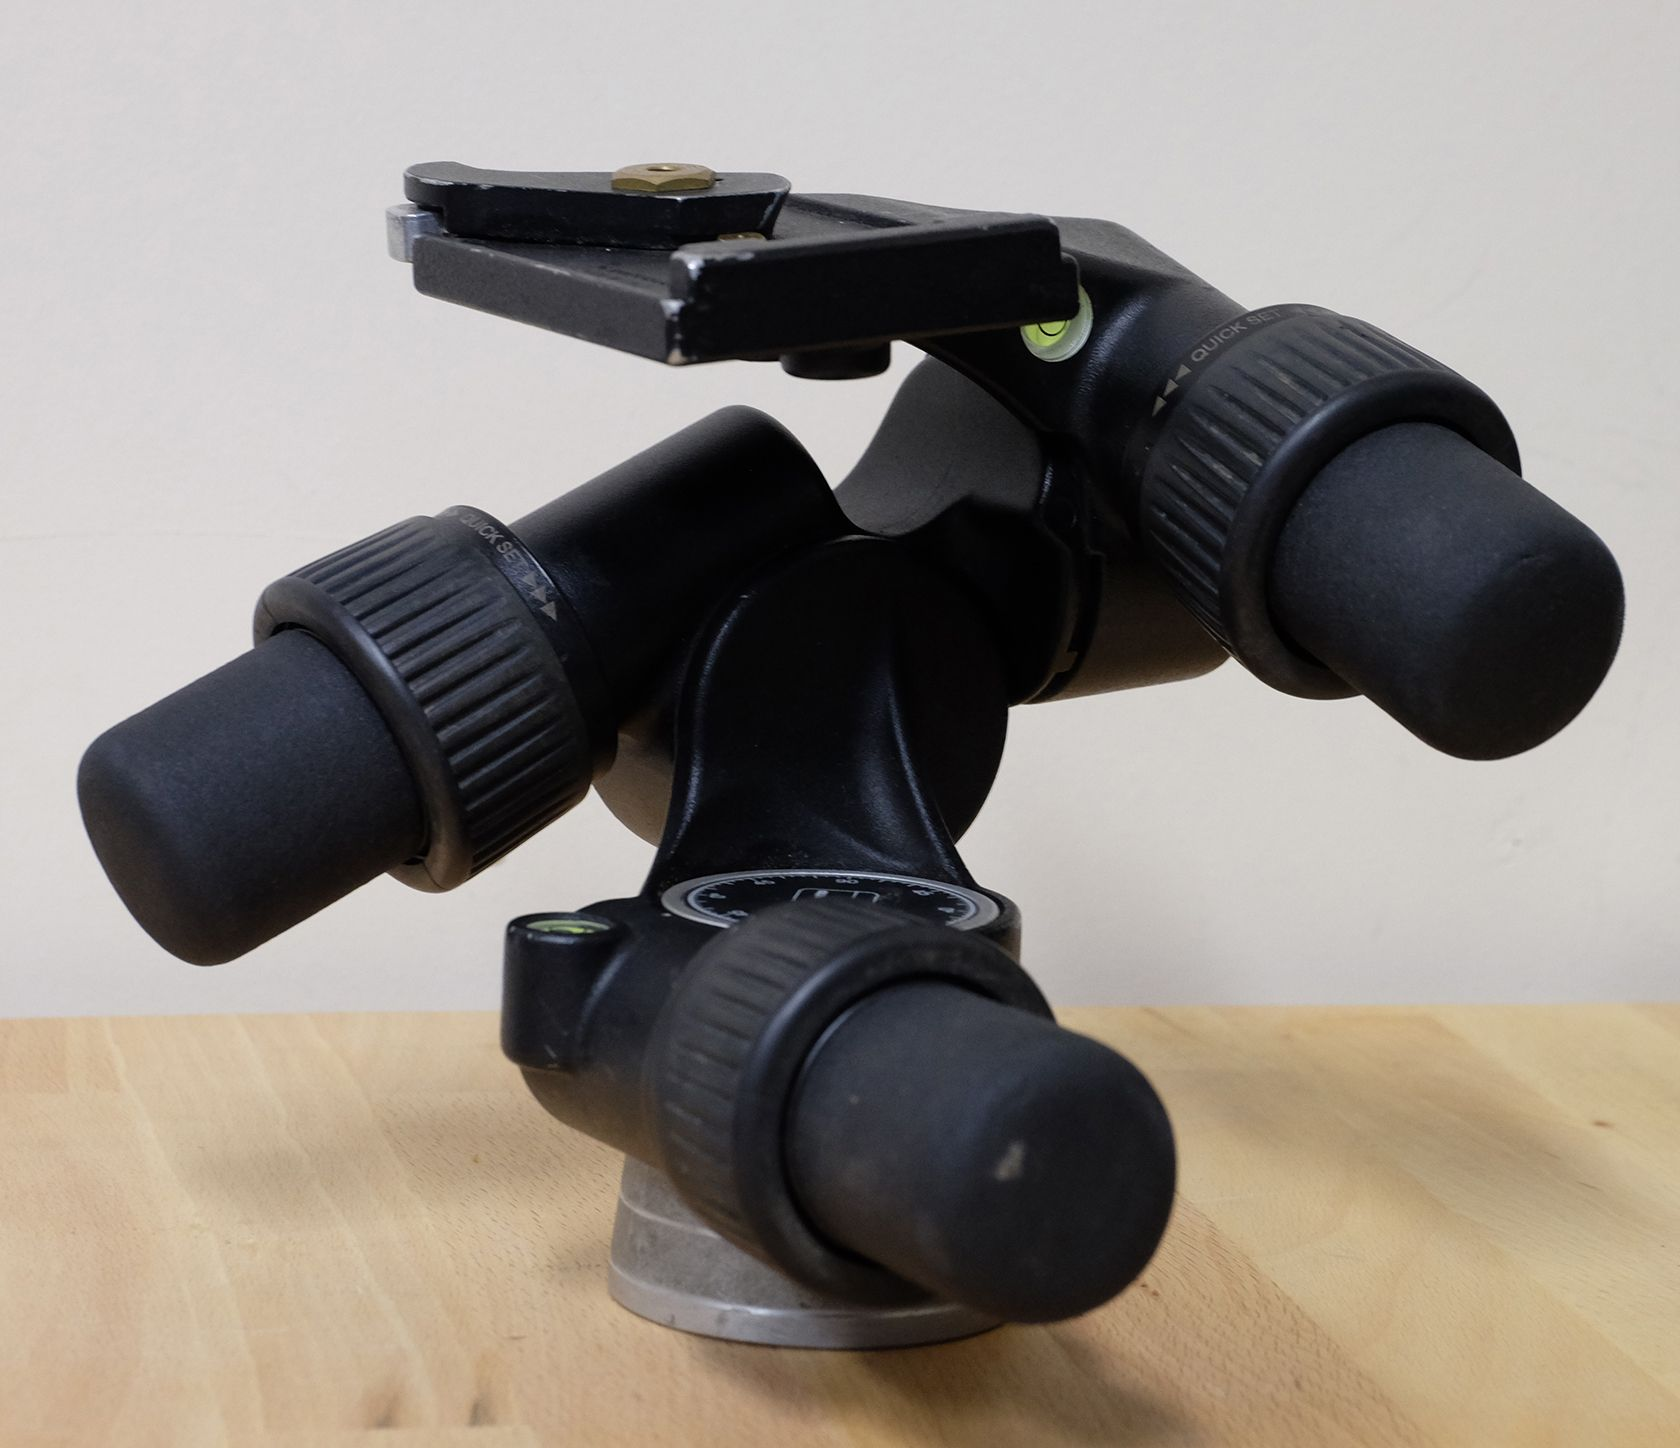 Manfrotto 405 Geared tripod head - Power without control counts